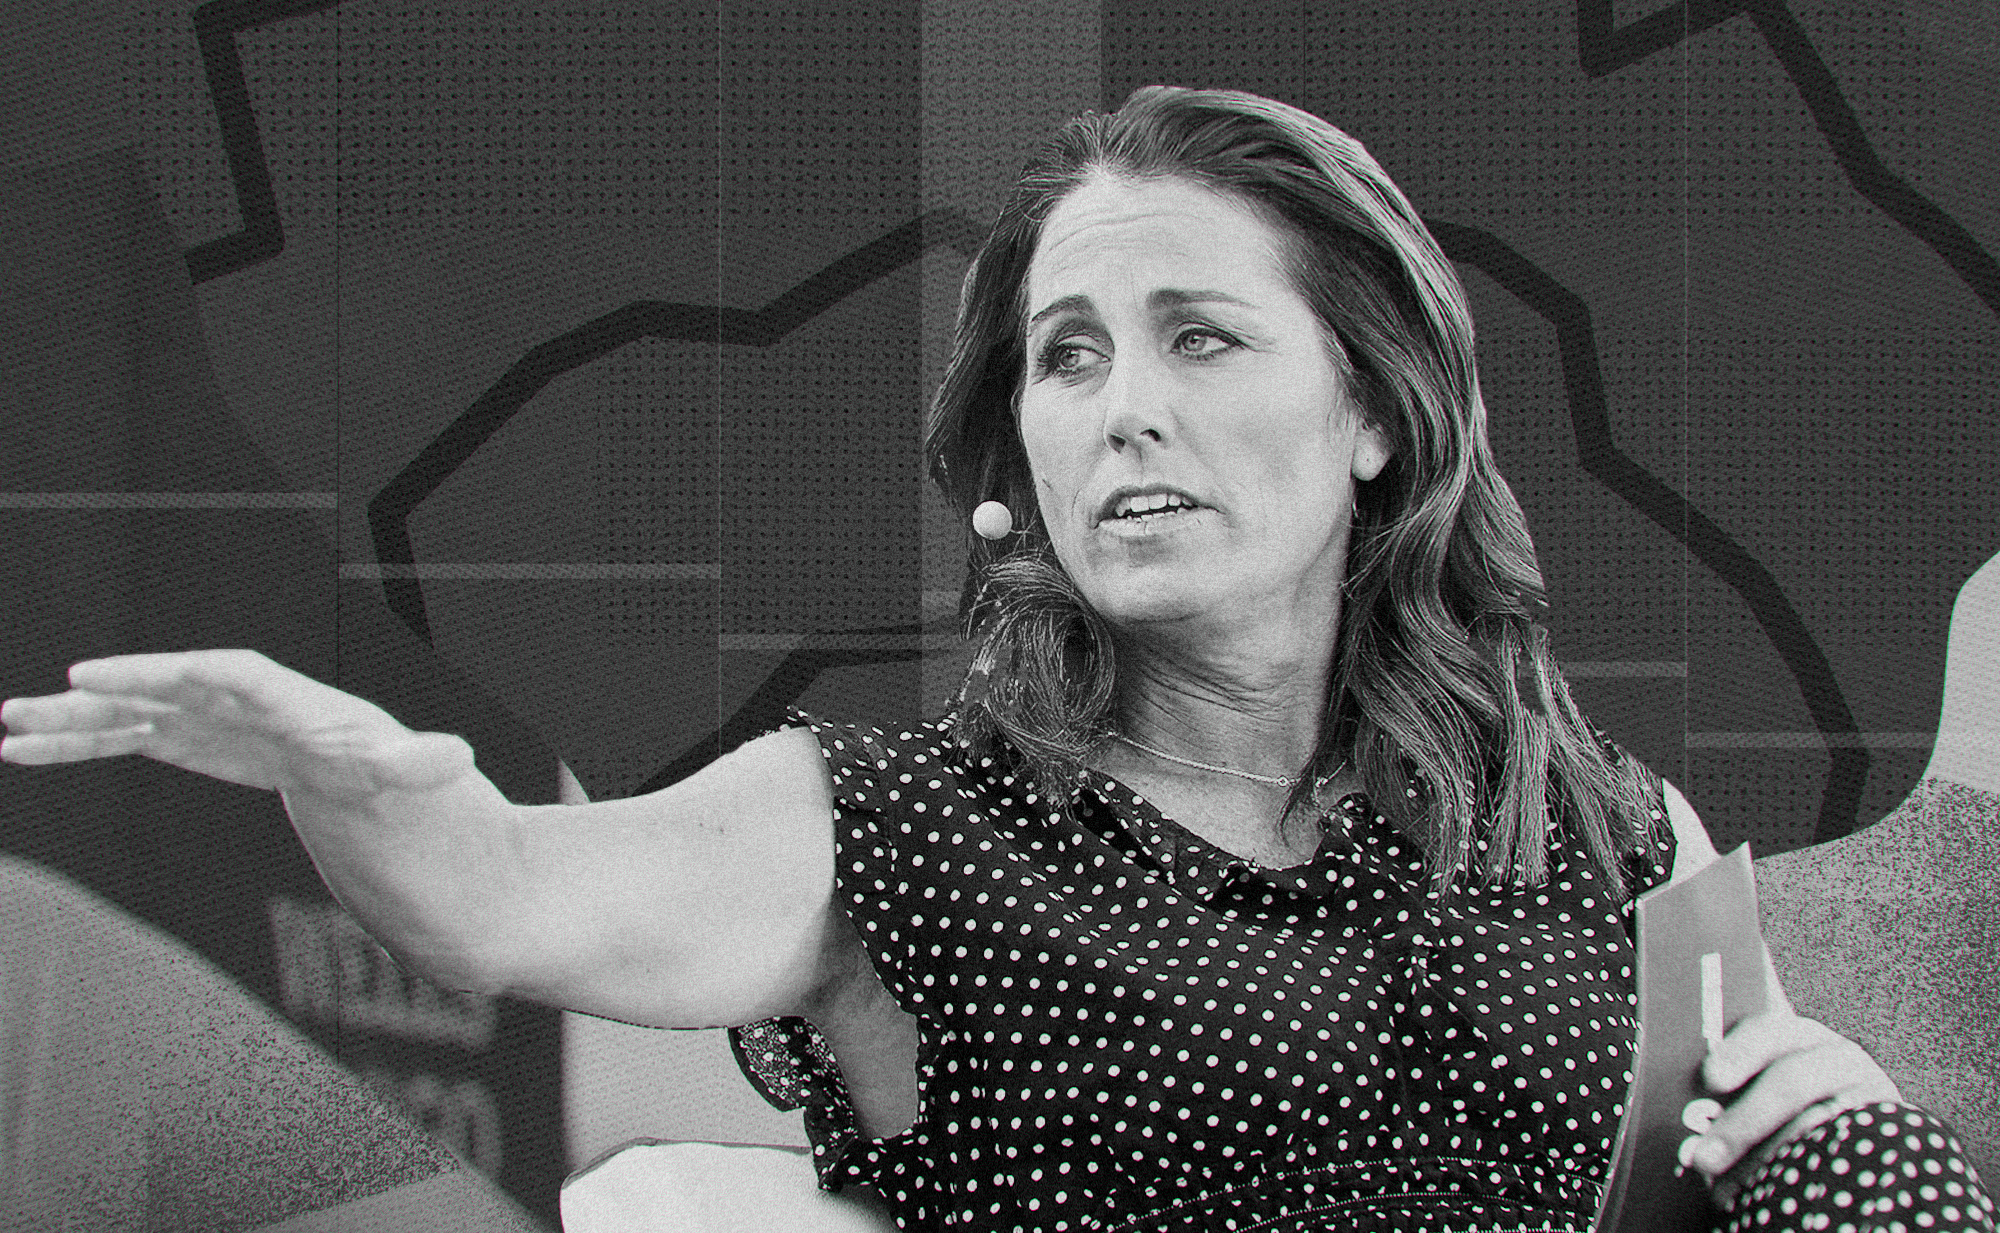 Black and white photo of Julie Foudy at a panel, gesturing to the person next to her.